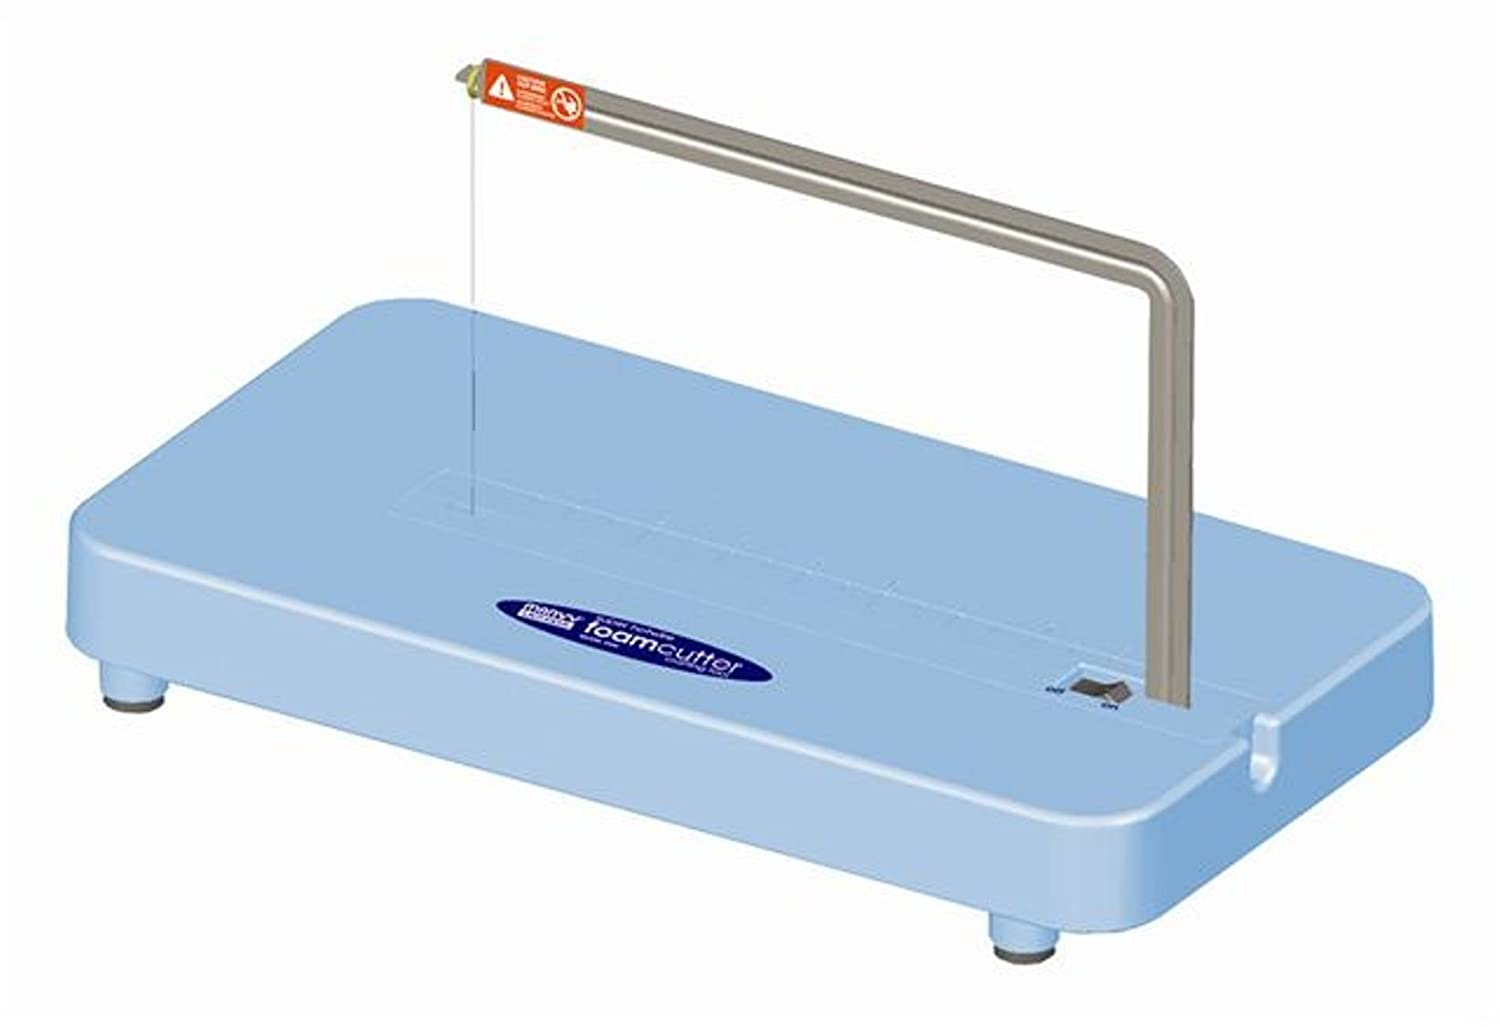 Amazon.com: Uchida 3400 Super Hotwire Foam Cutter Portable Crafting Tool